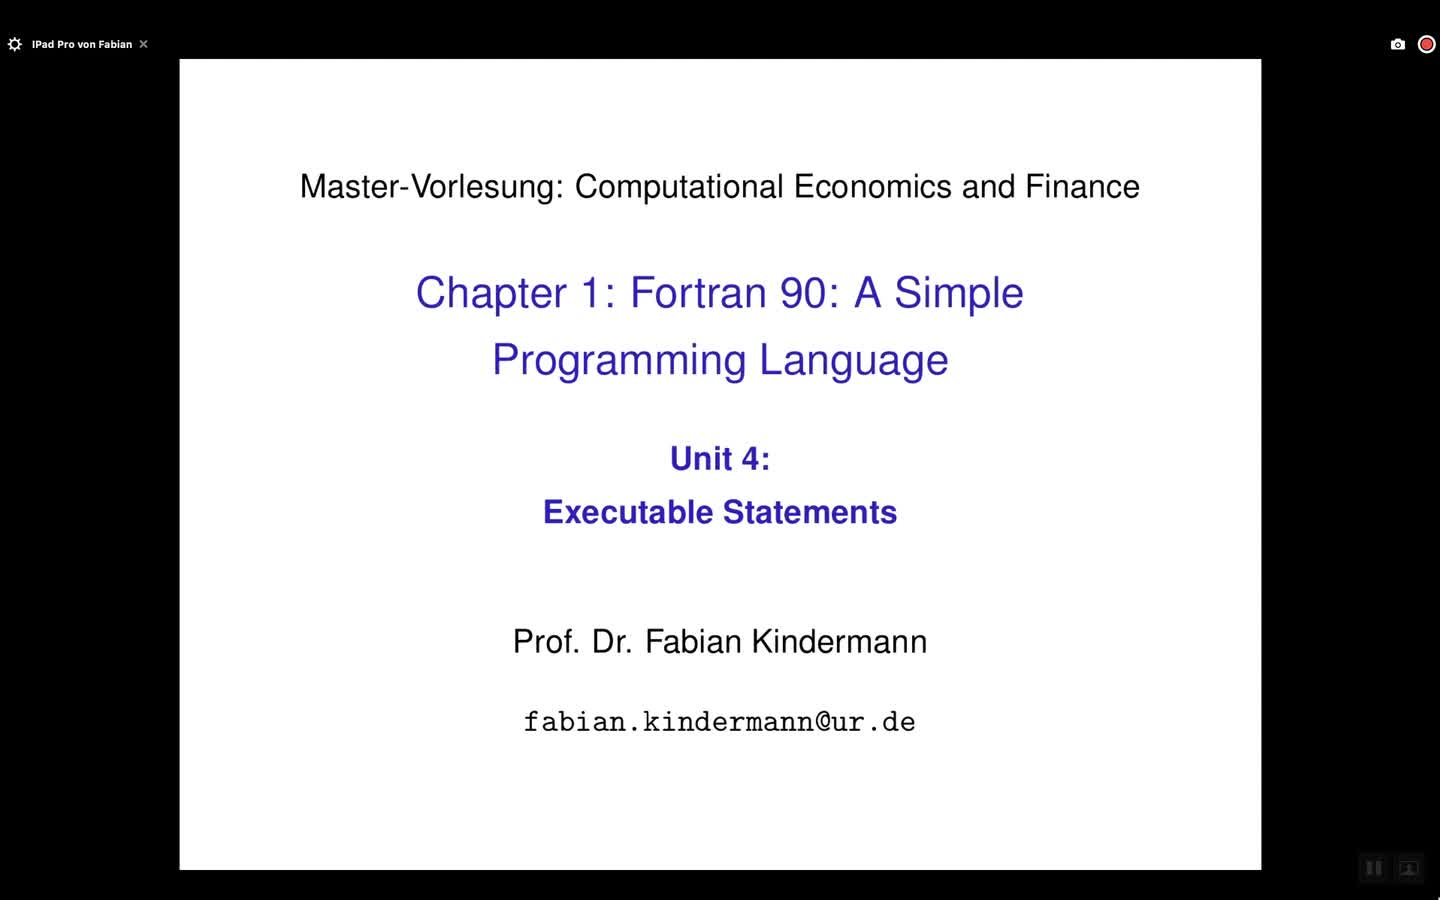 Chapter 1 - Unit 4 - Executable Statements